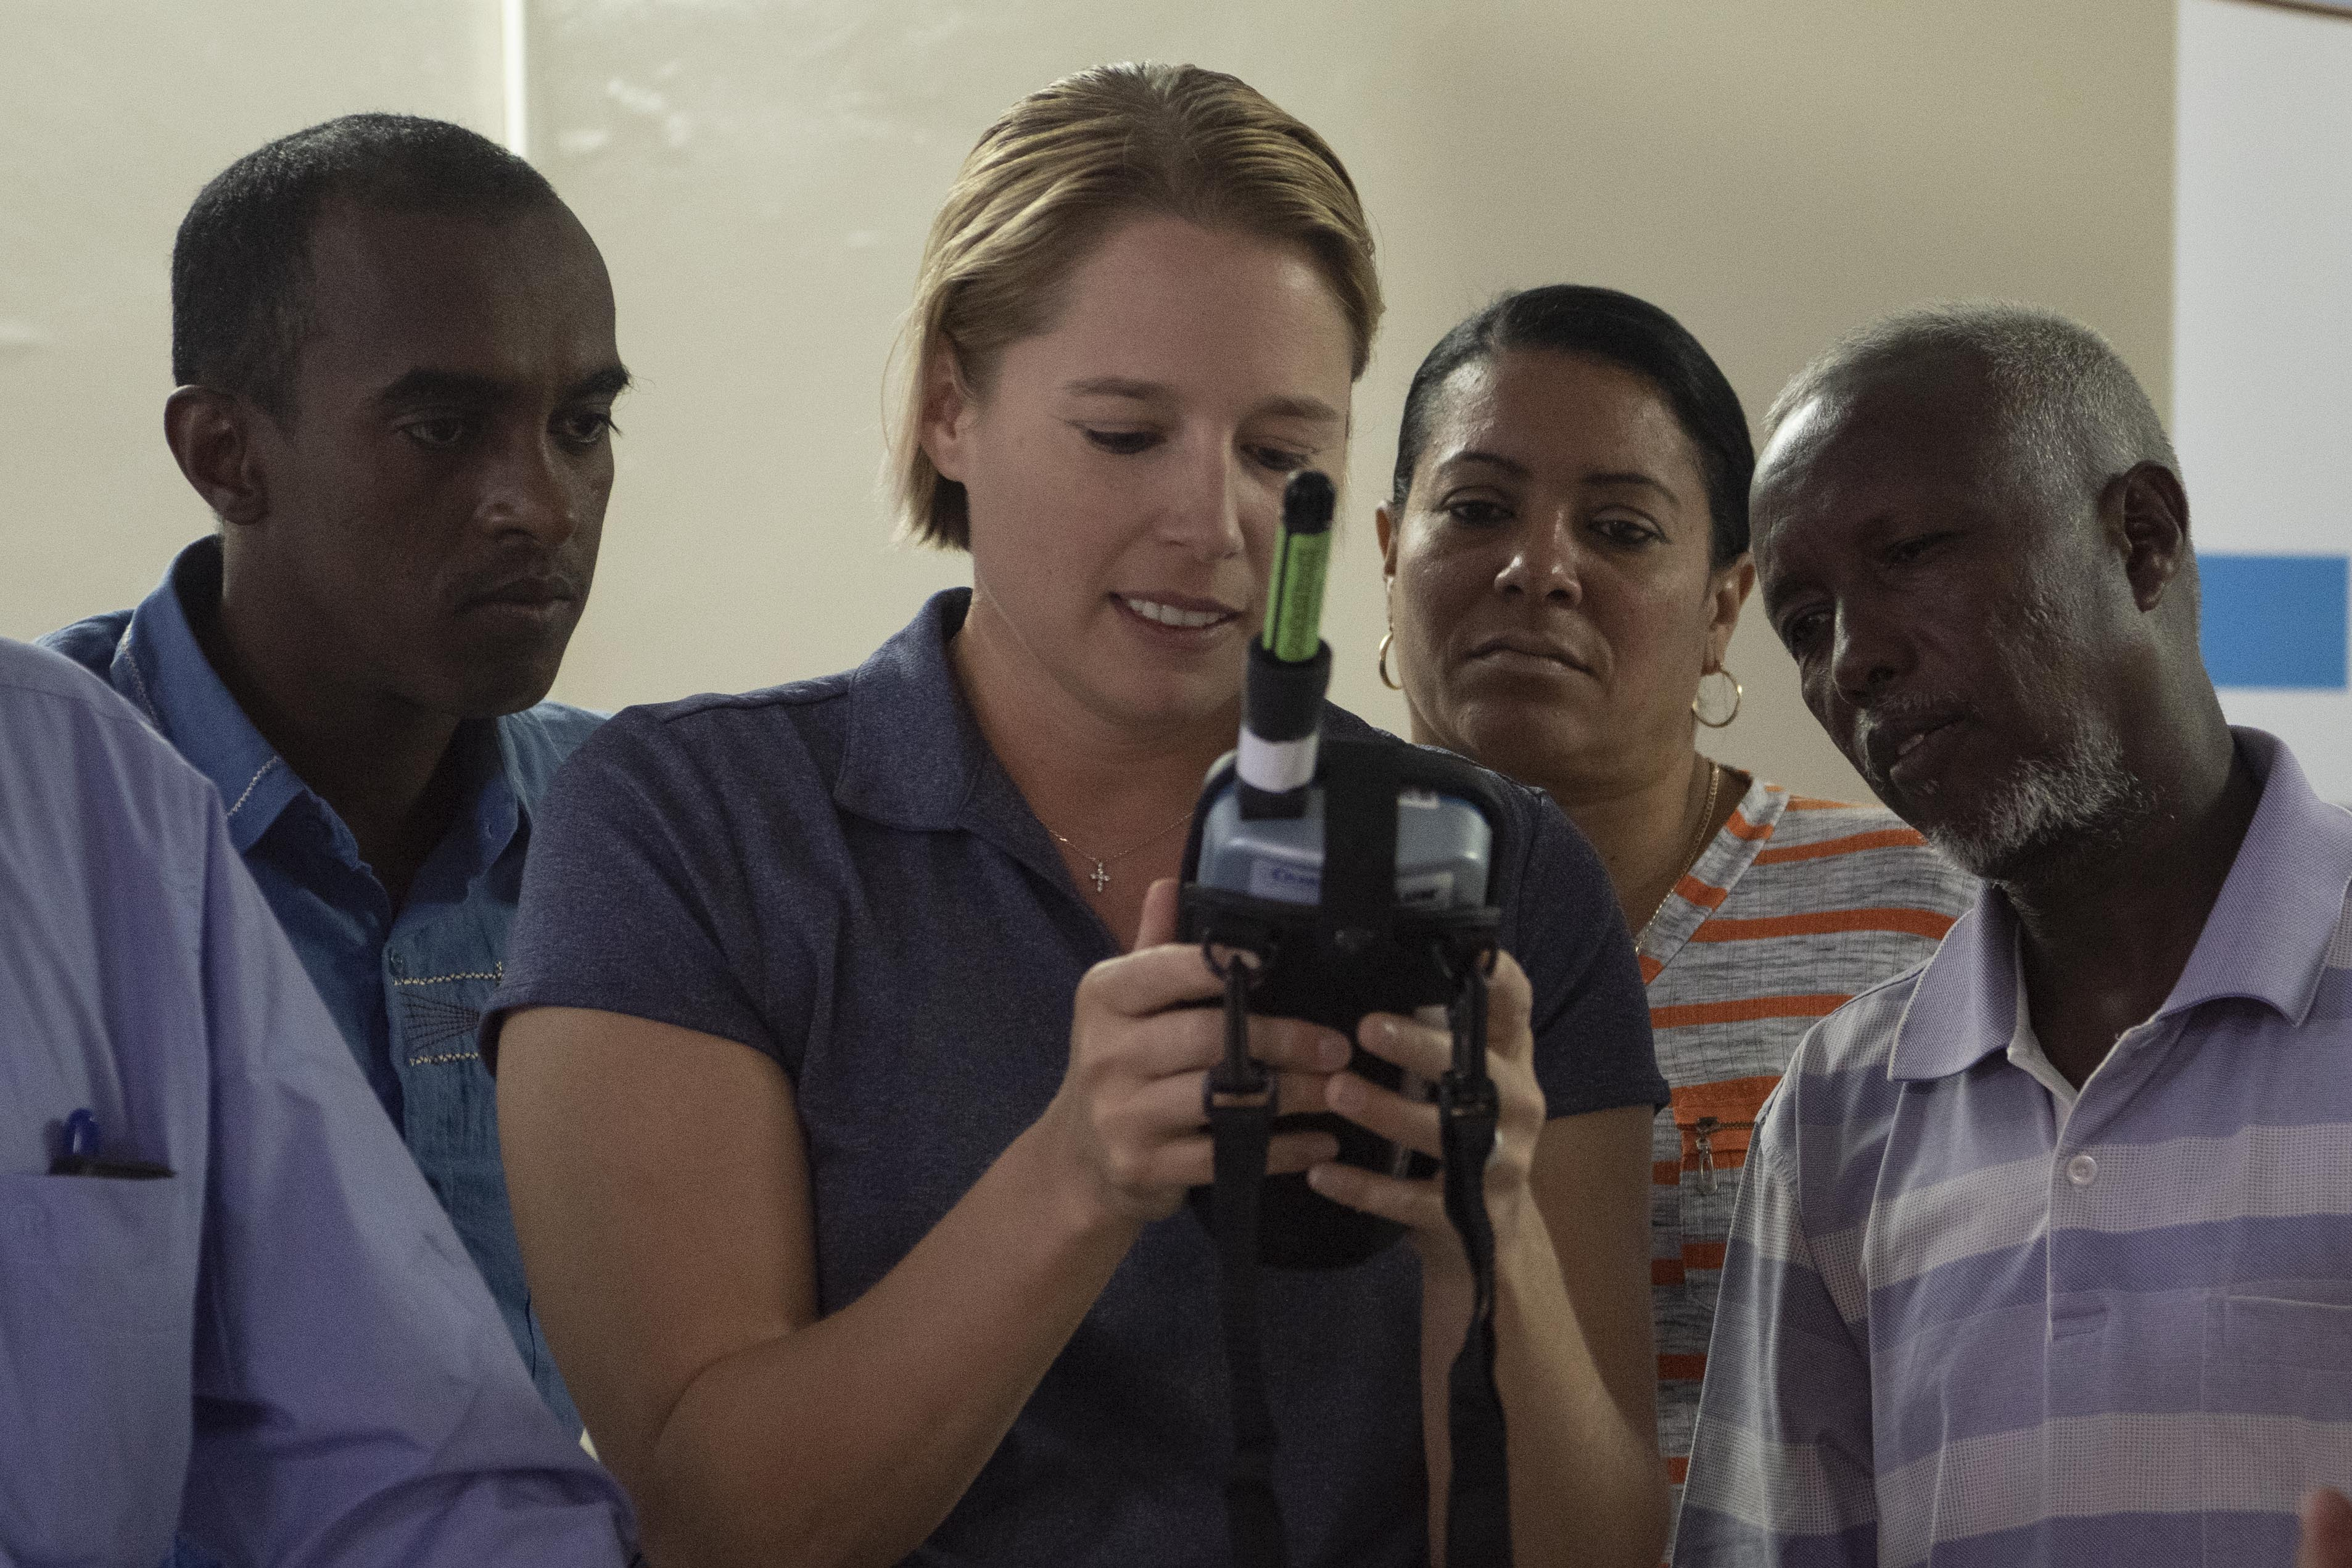 U.S. Army Maj. Stephanie Wire, veterinarian of the 411th Civil Affairs Functional Specialty Team, assigned to Combined Joint Task Force – Horn of Africa, demonstrates how to conduct a food surface swab test during a seminar with members from the Ministry of Agriculture, Livestock and Fisheries Djibouti Veterinary Services Division, in Djibouti City, Djibouti, Jan. 30, 2020. (U.S. Air Force photo by Tech. Sgt. Ashley Nicole Taylor)